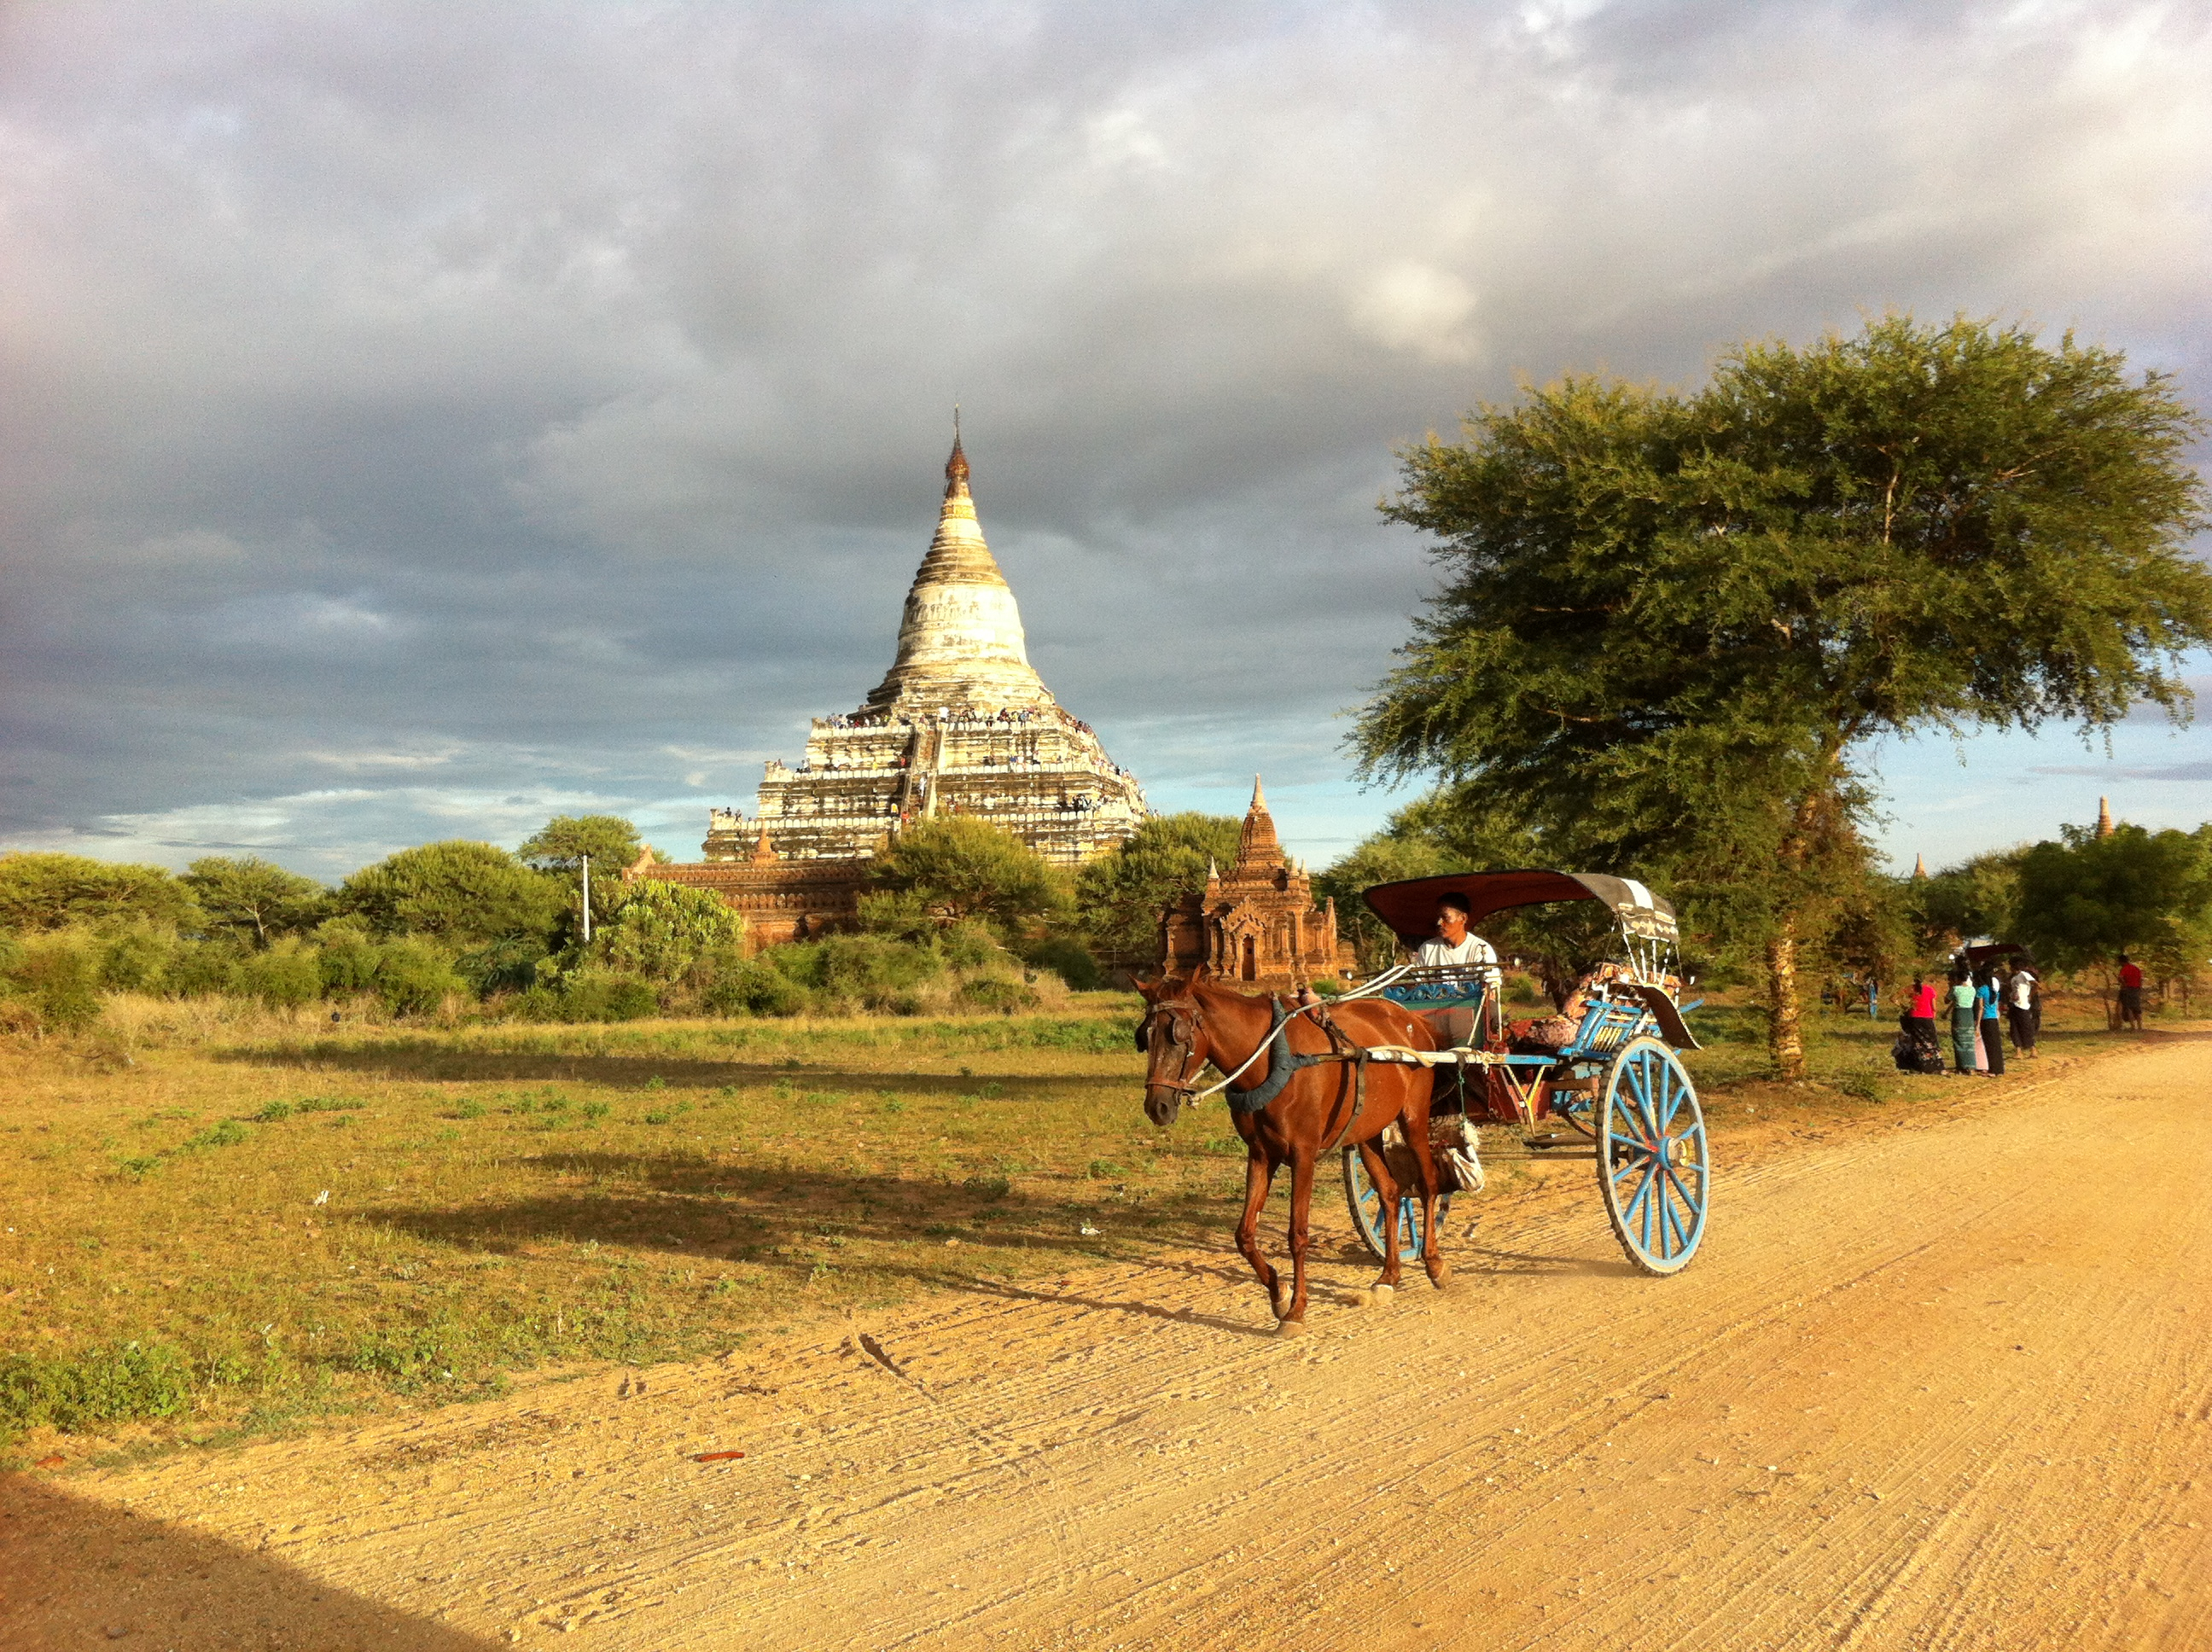 Horse cart en route to Shwe San Daw Temple at sunset (Photo Catherine Clover 2014)